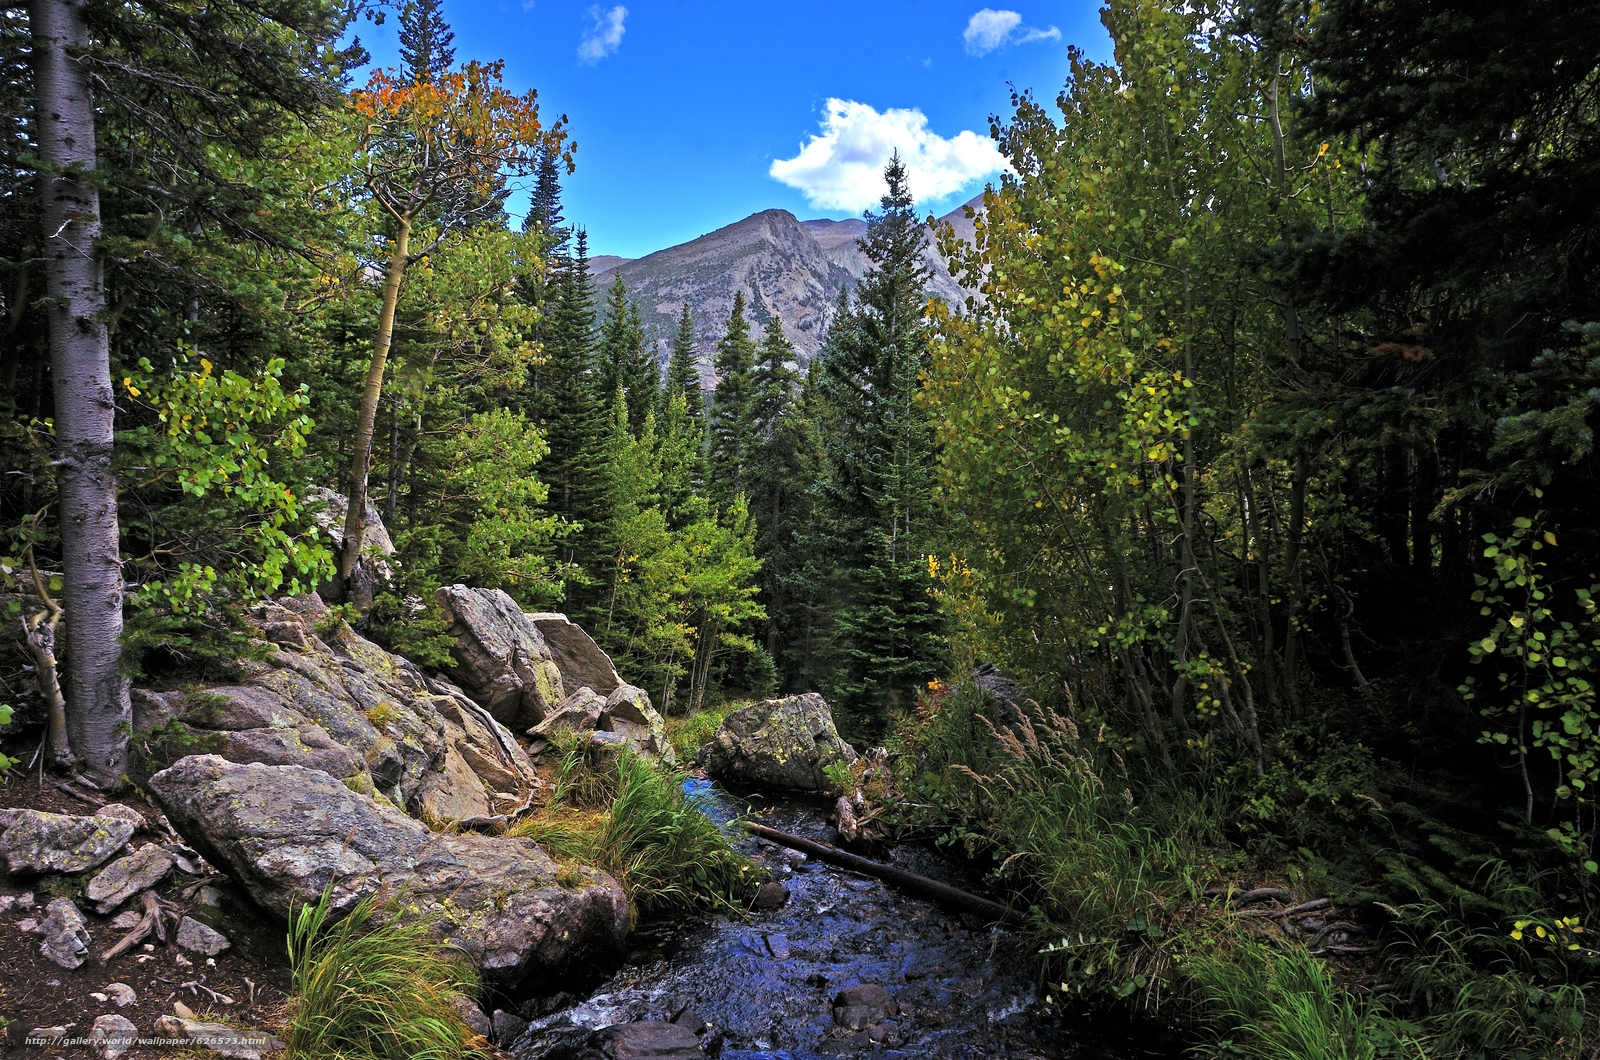 Download wallpaper Rocky Mountain National Park river Mountains 1600x1060